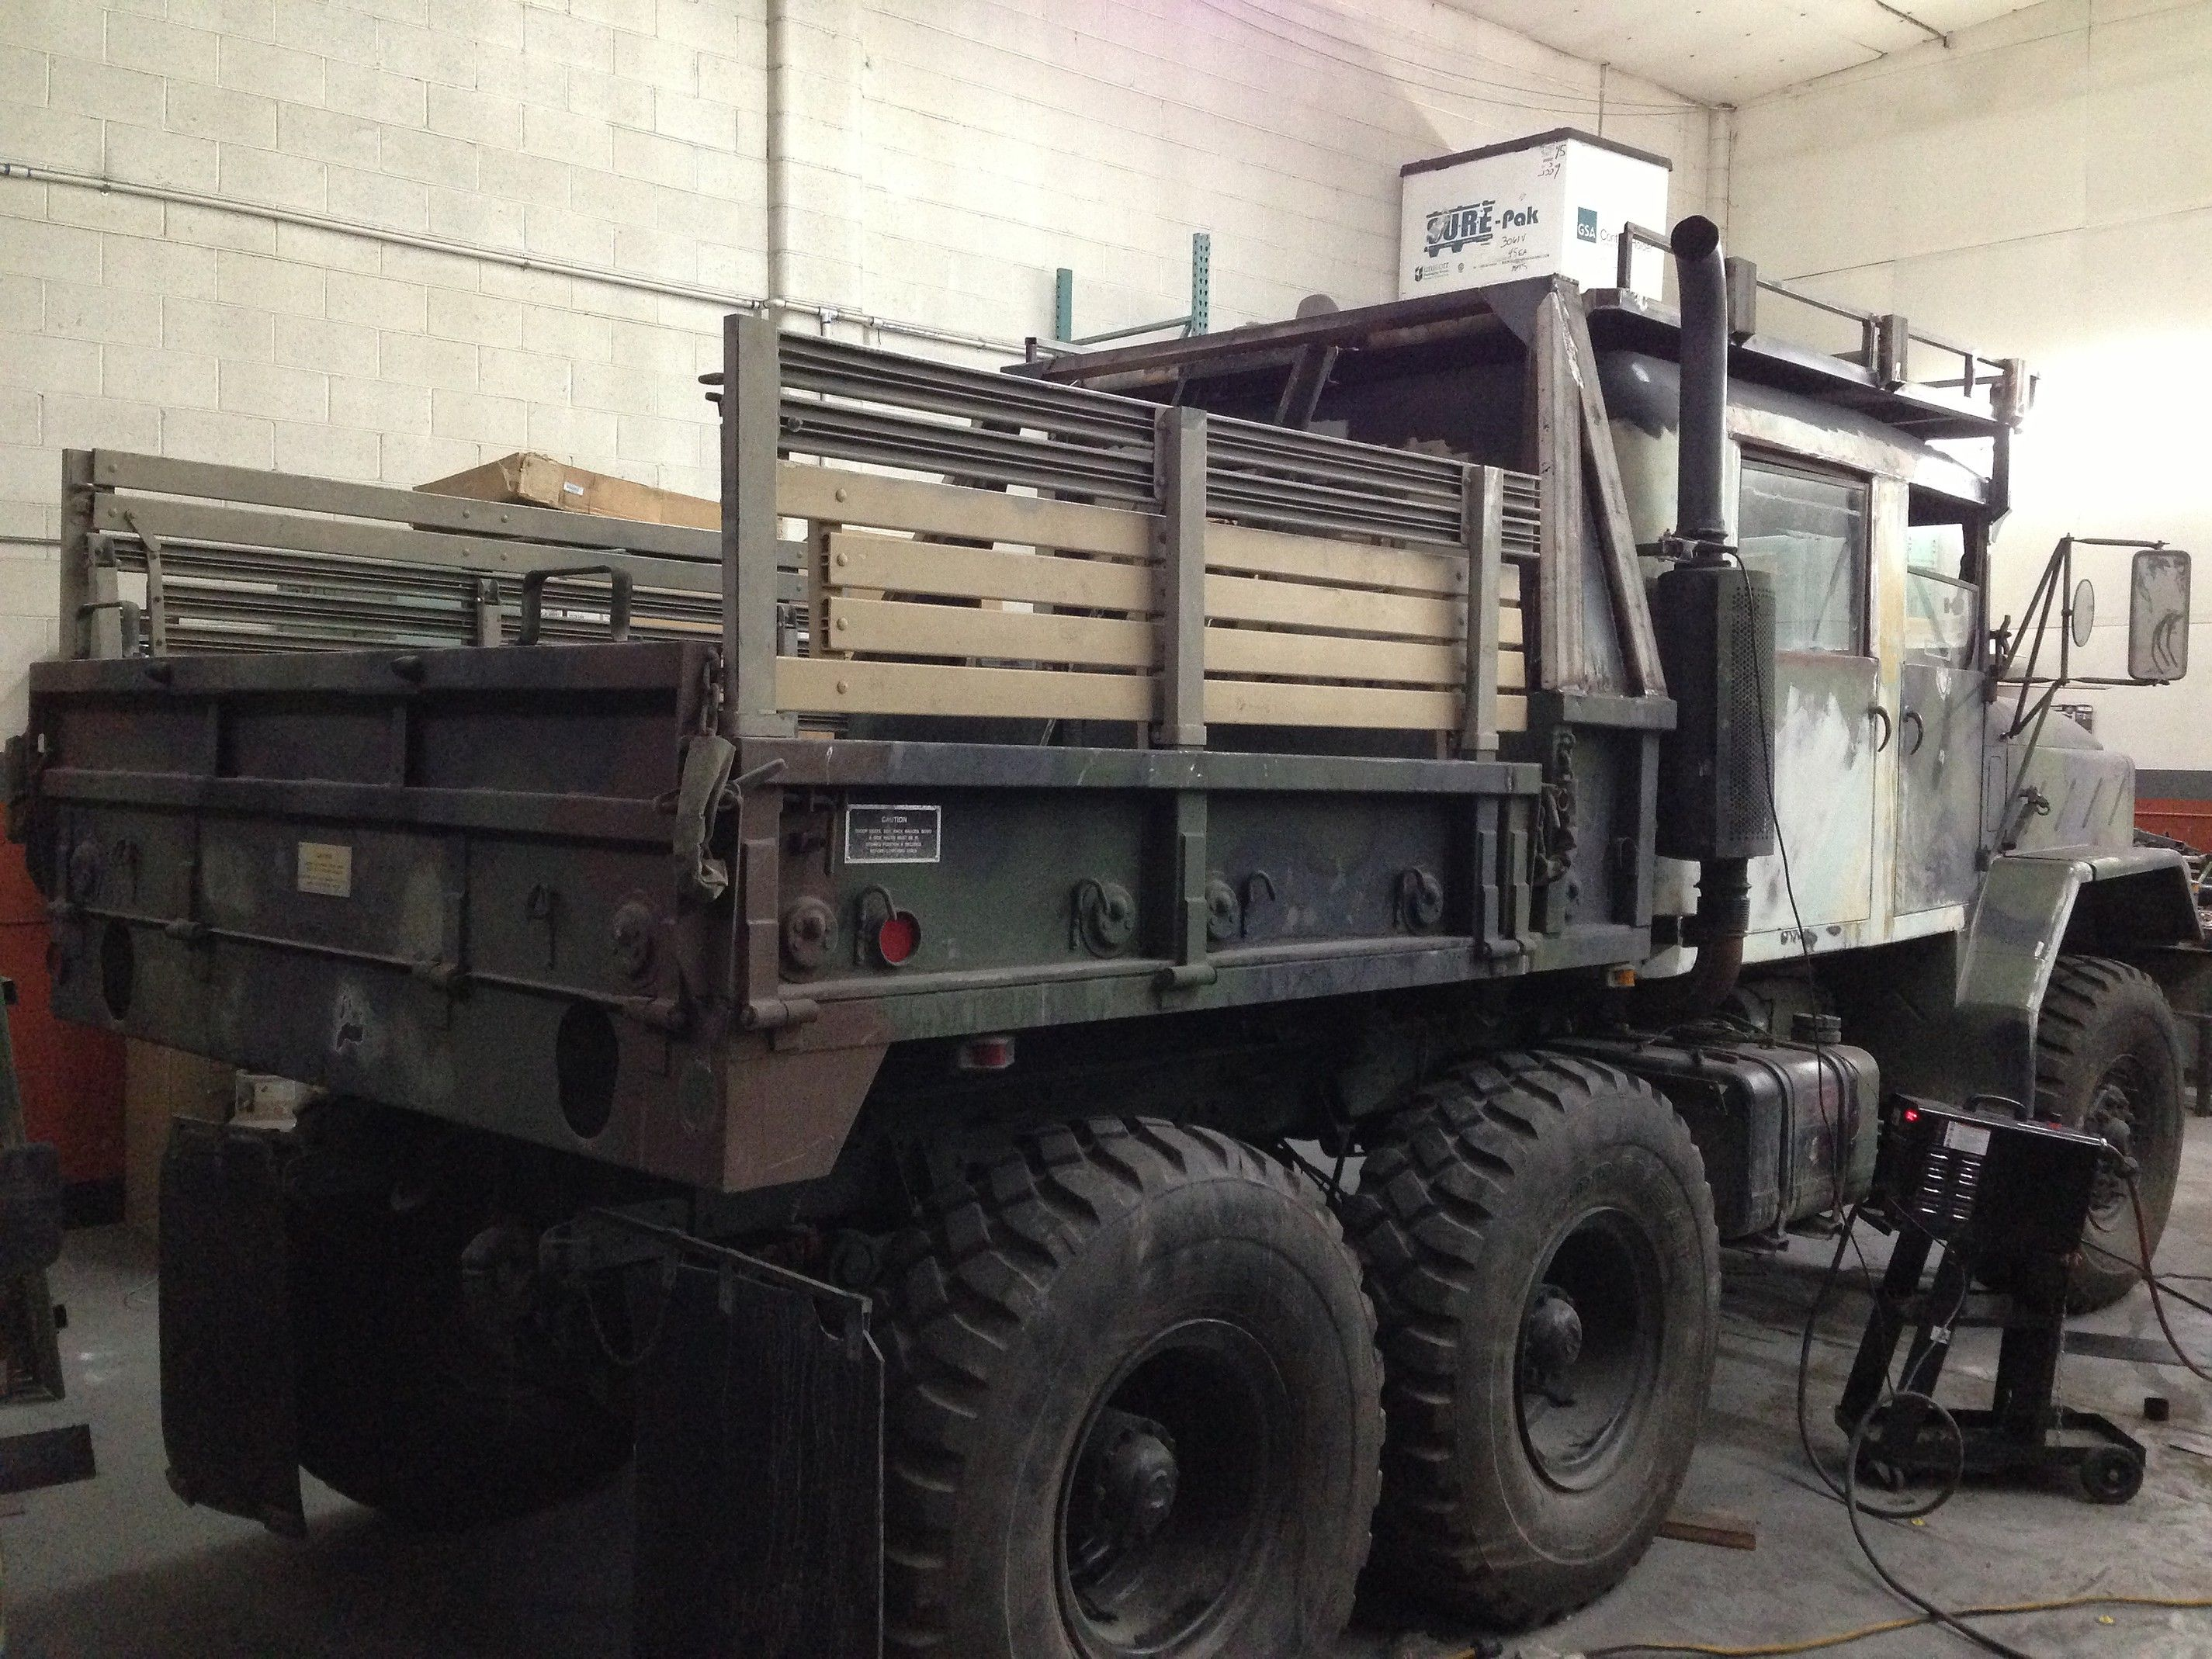 Custom Built 6x6 4x4 Bobbed Deuce And A Half Ton 5ton Crewcab Trucks